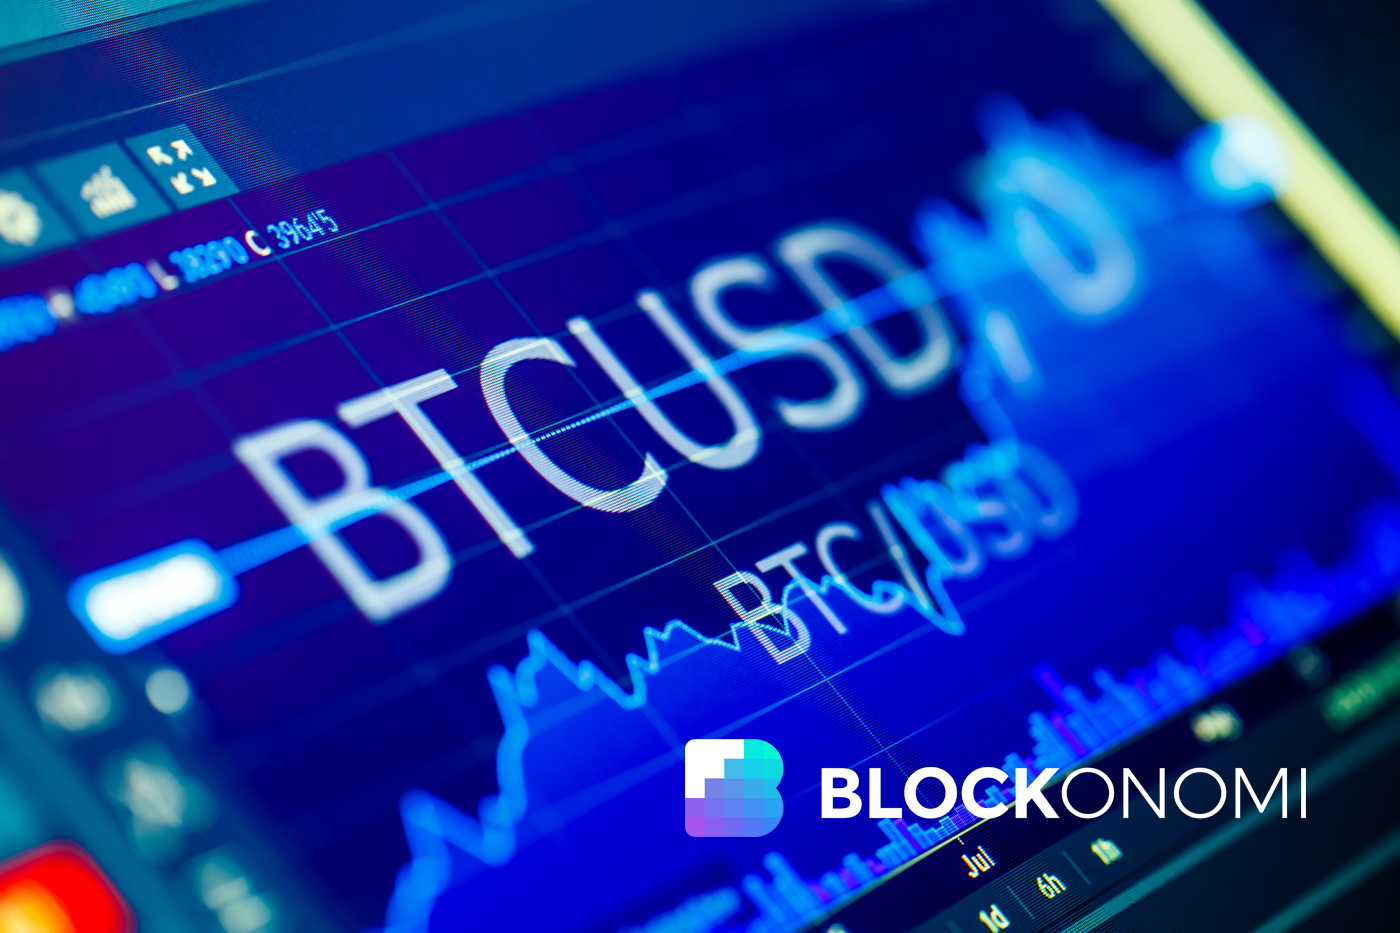 Bitcoin Price Analysis: Sideways Expected in Upcoming Days, Market Still Bearish